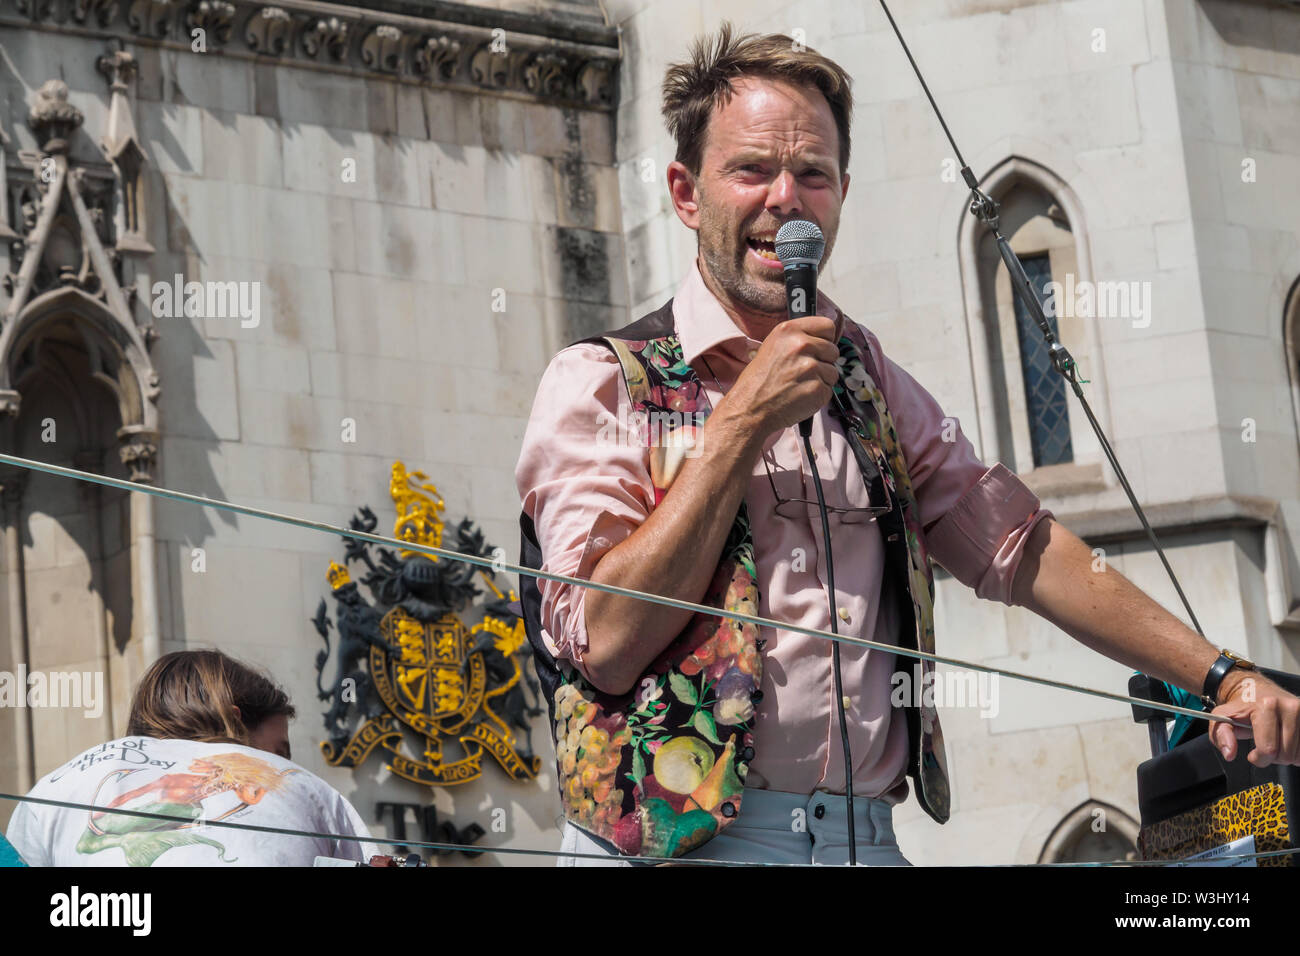 London, UK. 15th July 2019. Rupert Read of Extinction Rebellion speaks from the yacht as XR begins another series of protests in five major cities against the criminal inaction by the government on climate and ecological collapse. The protesters brought a yacht named after Polly Higgins who fought for years for an Ecocide Law to the Royal Courts of Justice and continued her fight blocking the Strand all day with performances, discussions, speeches, music and ceremonies in front of the yacht. Peter Marshall/Alamy Live News - Stock Image